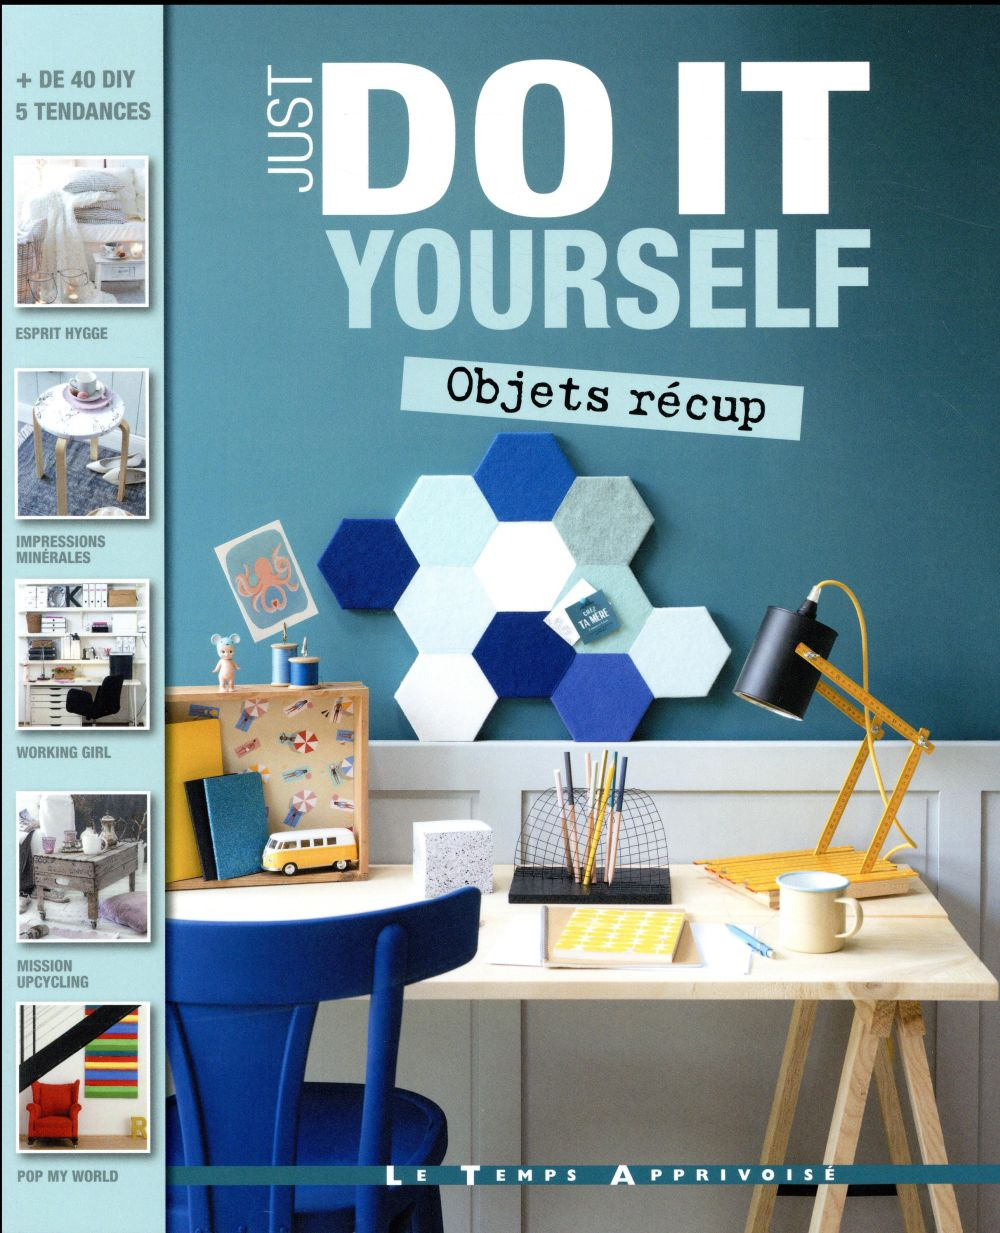 Just do it yourself ; objets récup